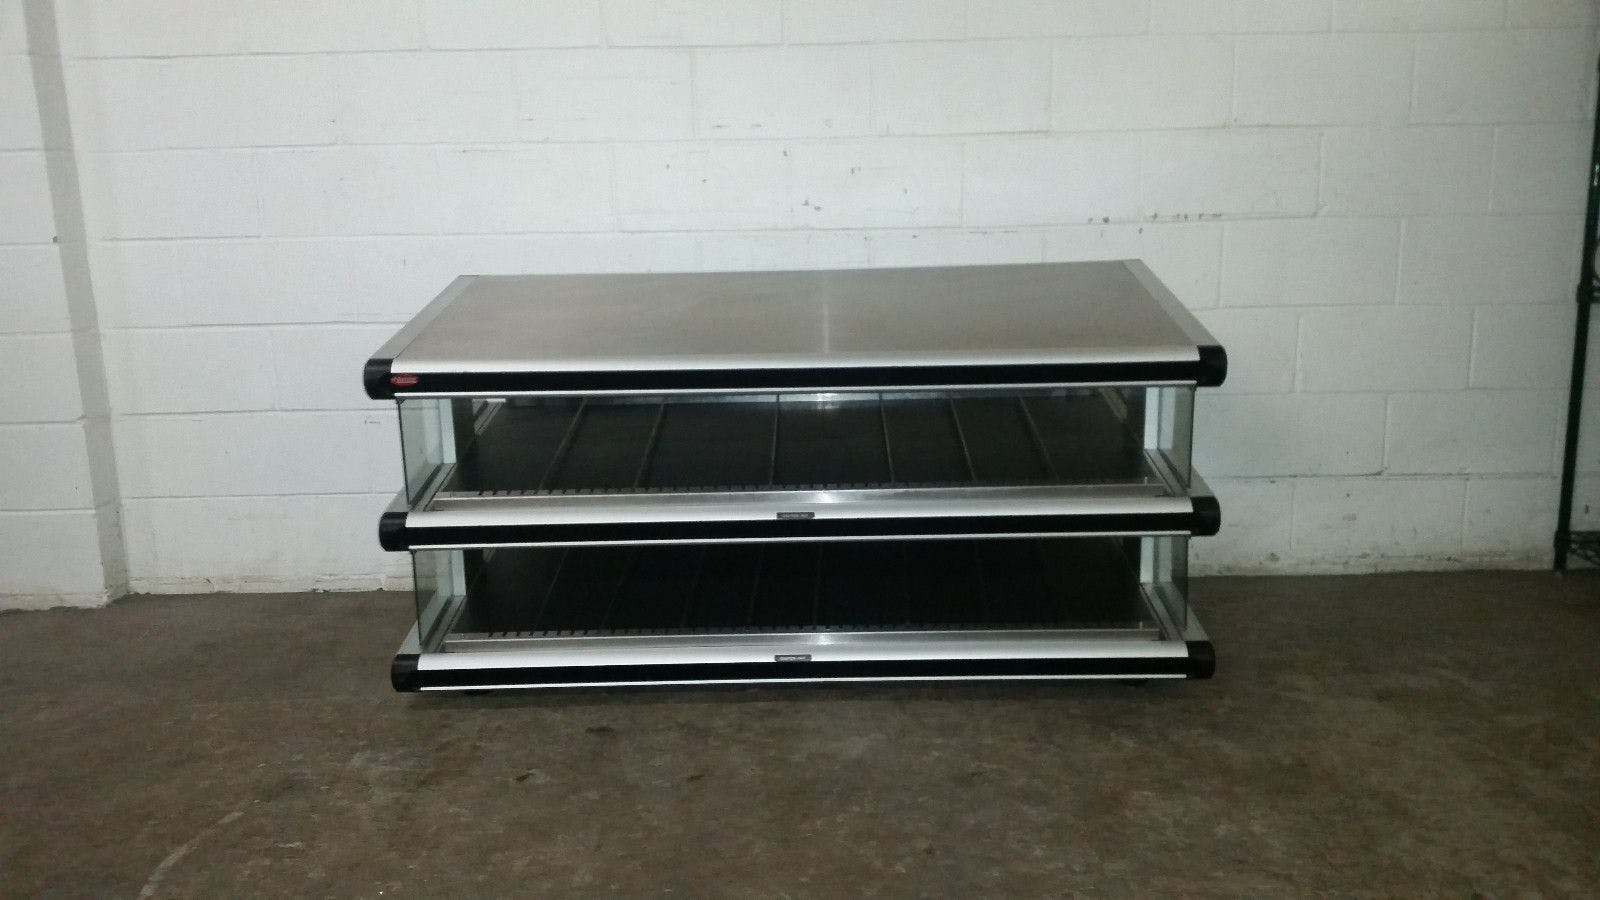 Hatco Heated Slant Warmer Display GR2SDS-54D Tested 120/208/240 Volt Lighted - sold by Jak's Restaurant Supply